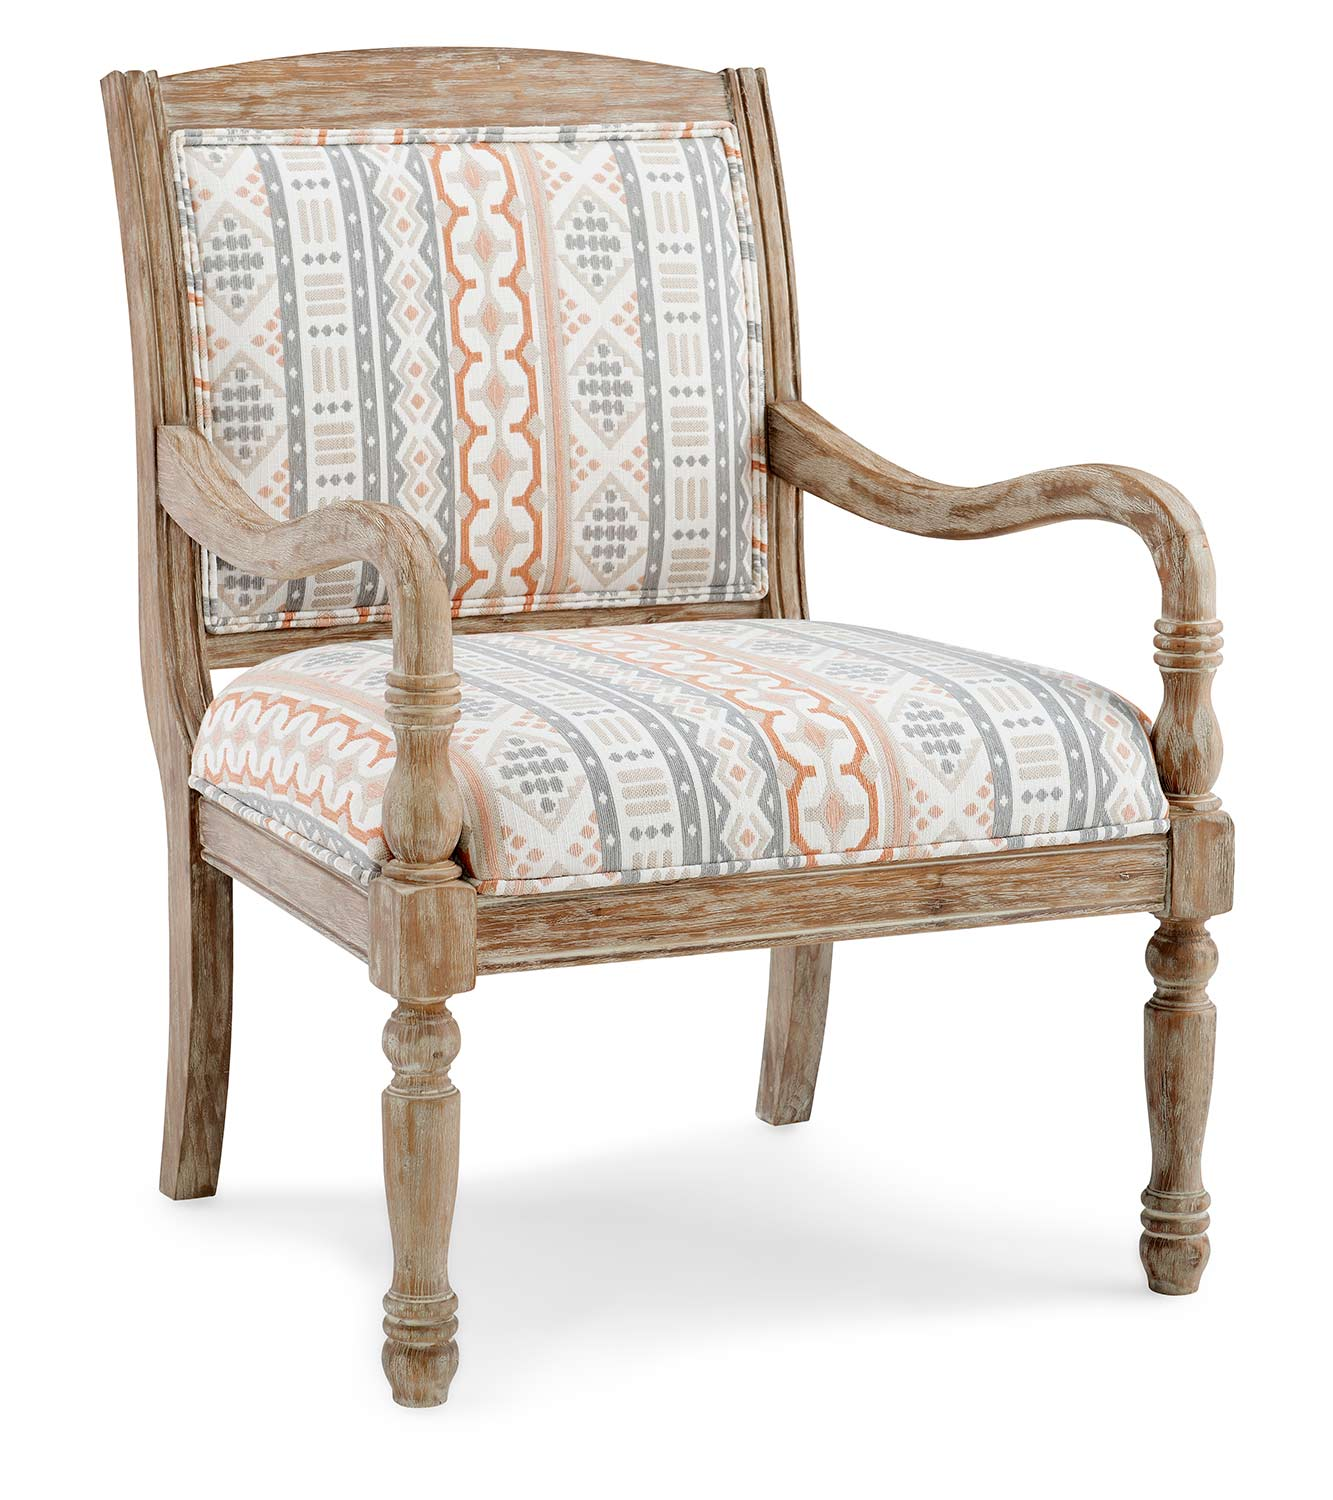 Powell Watson Accent Chair - Natural Wire brush Finish